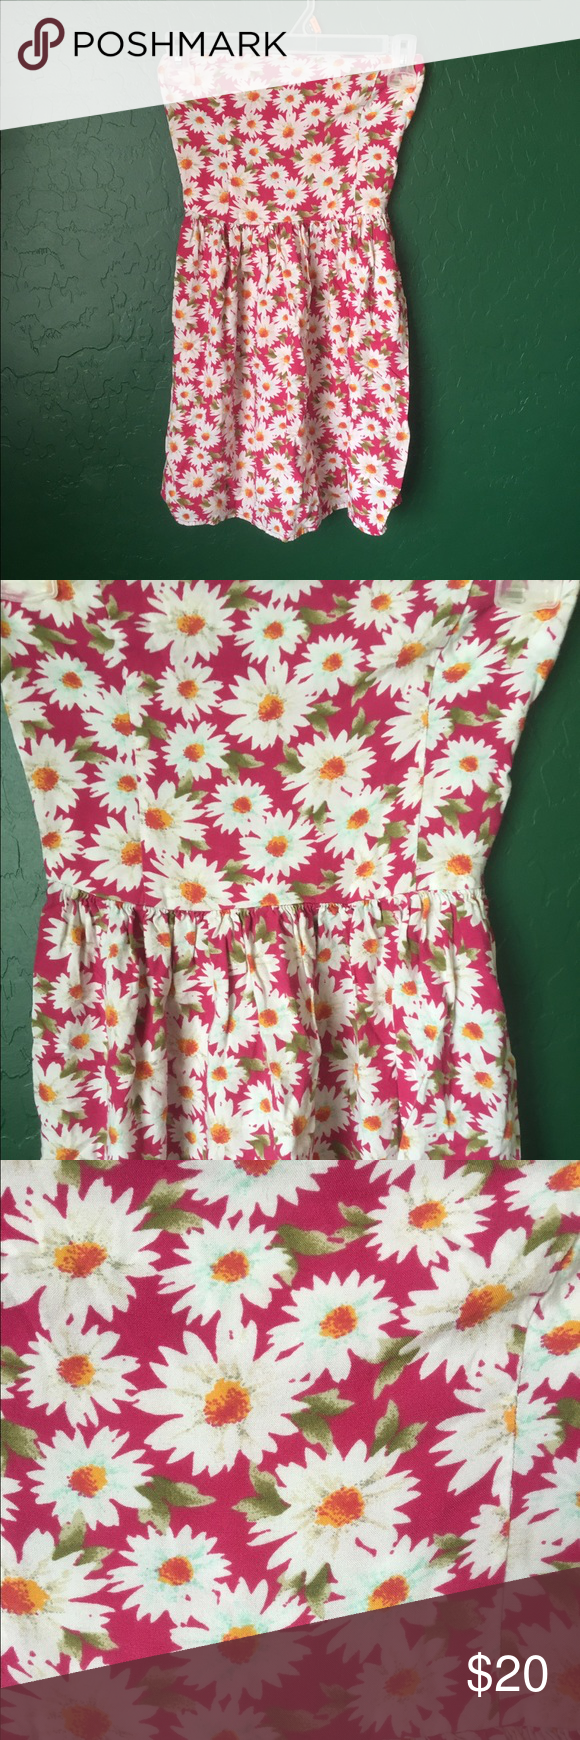 d8299cbc51 Hollister dress Pink floral patterned sleeveless tube top style minidress.  Gently worn